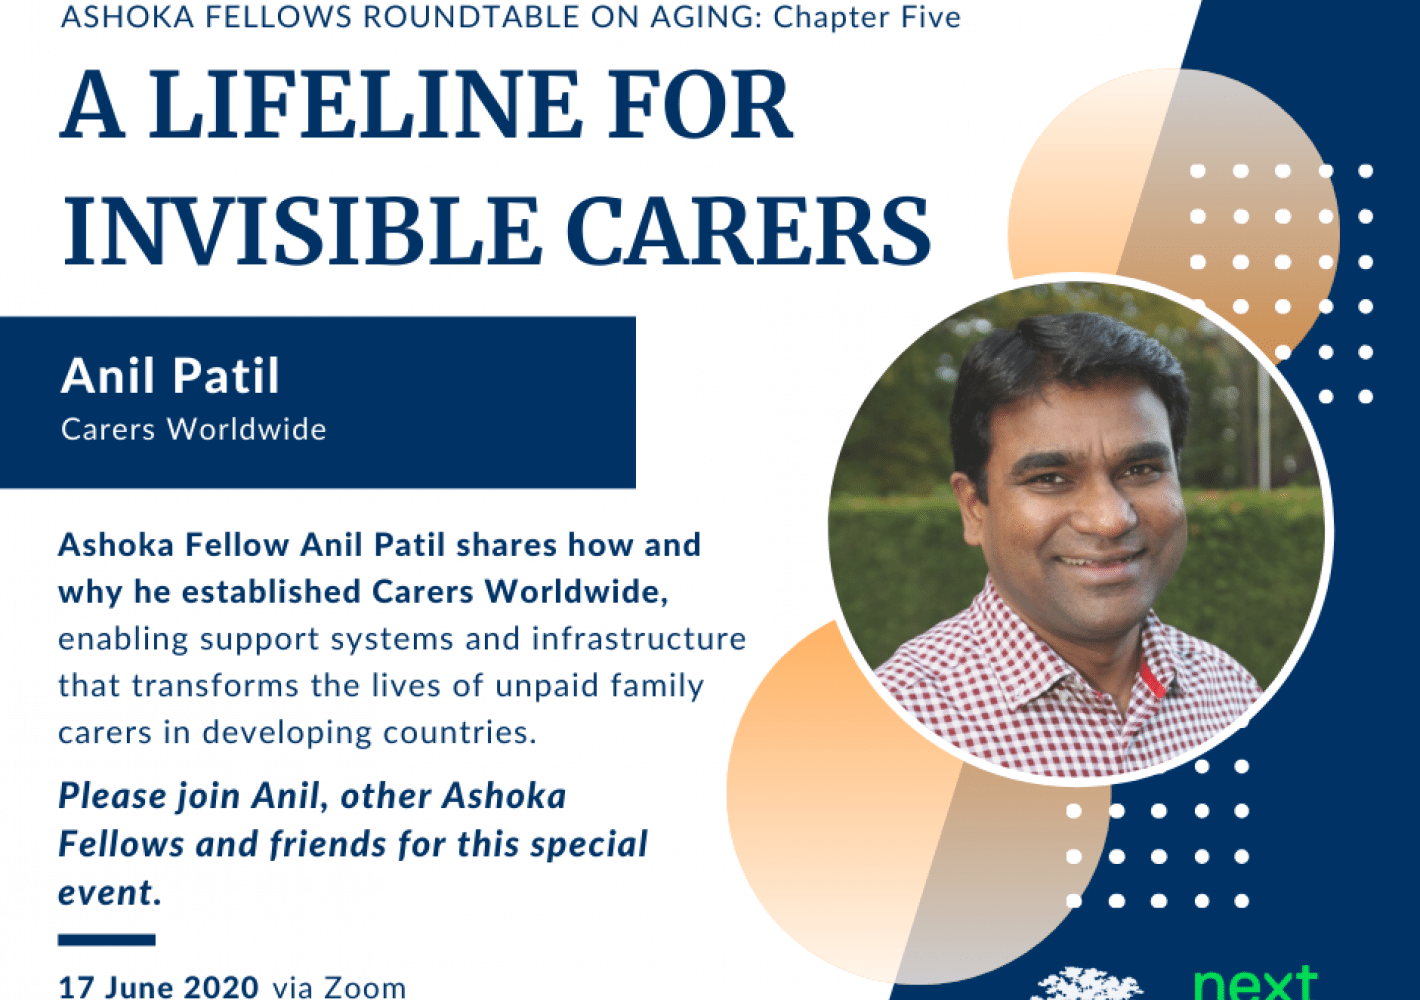 Anil Patil: A Lifeline for Invisible Carers